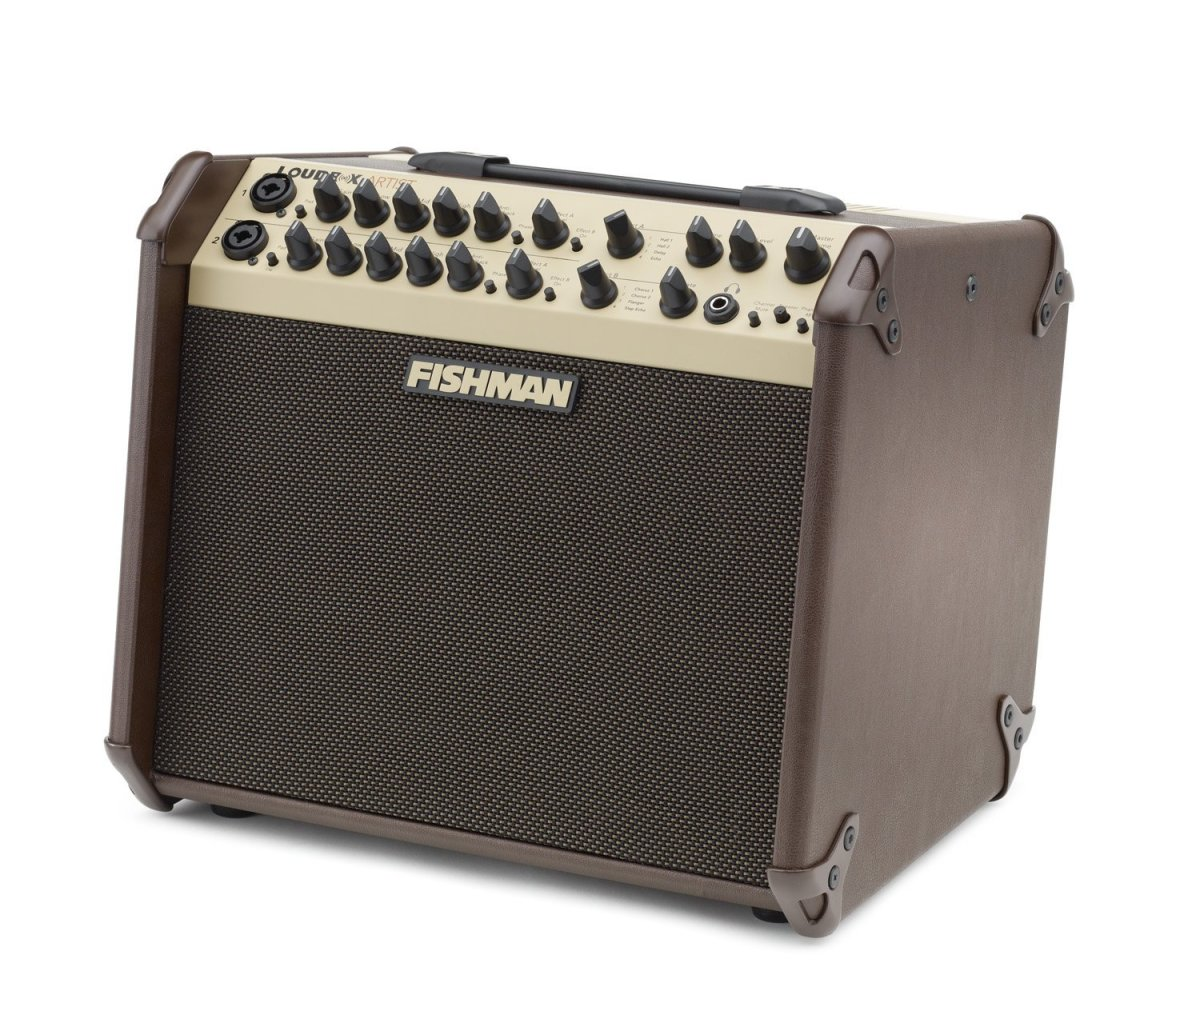 The Fishman Loudbox is one of the top acoustic guitar amps for gigs and home use.